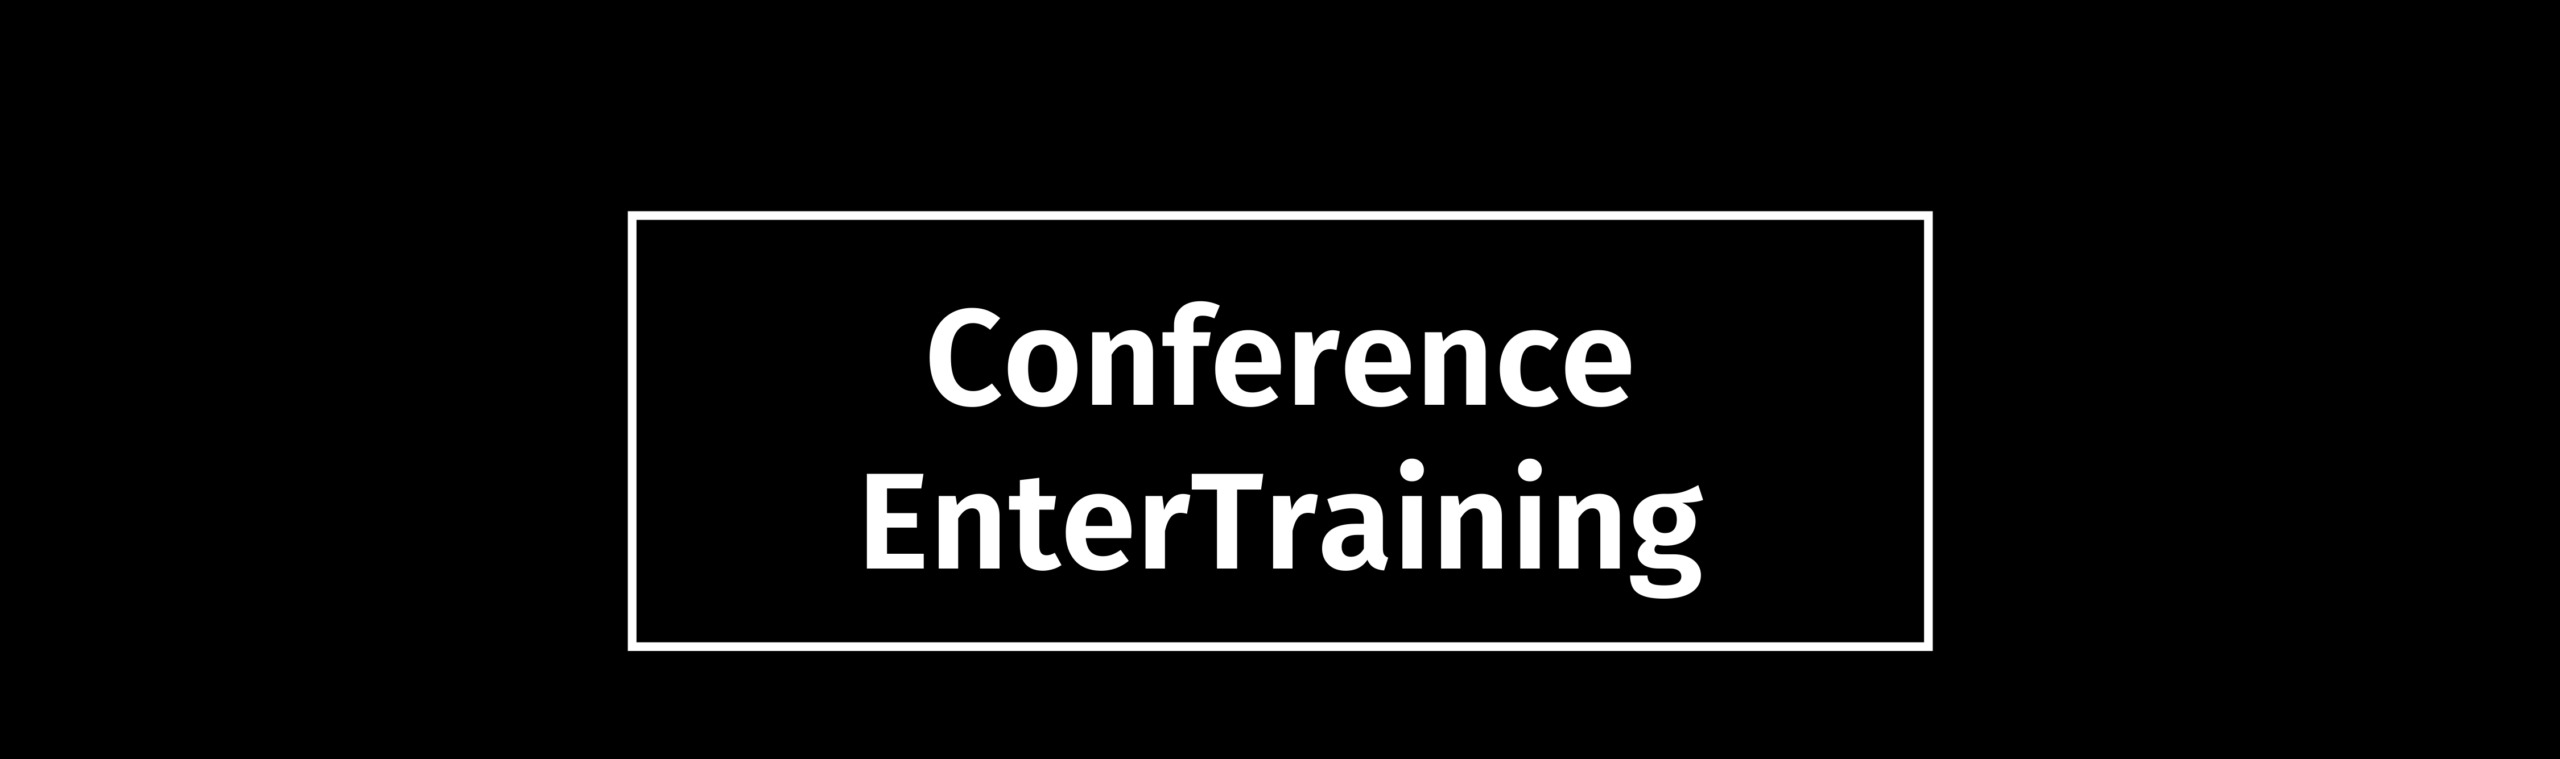 Page title: Conference EnterTraining